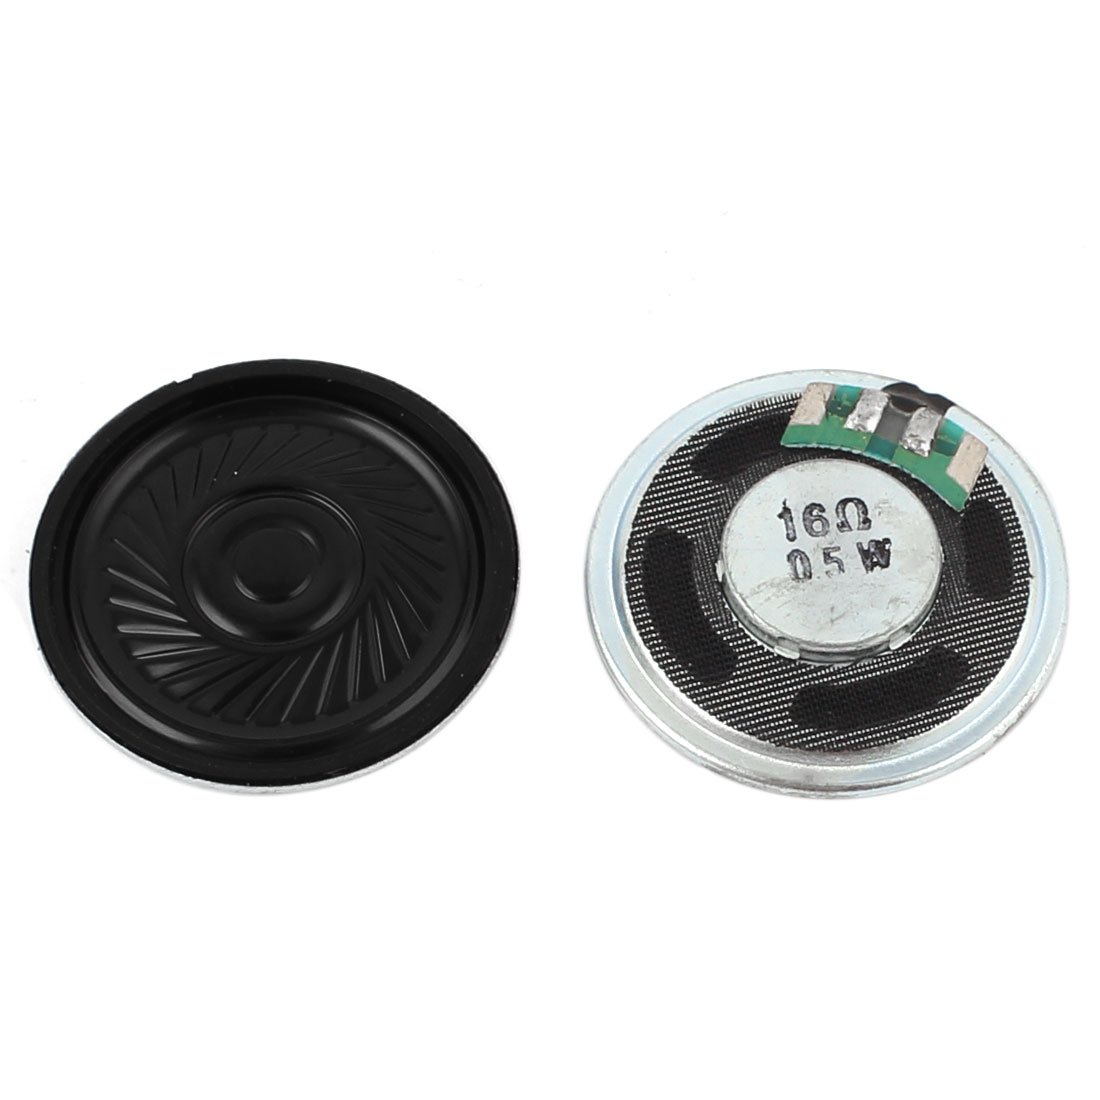 uxcell 2 Pcs 0.5W 16Ohm 36mm Round Inside Magnet Electronic Speakers Trumpet